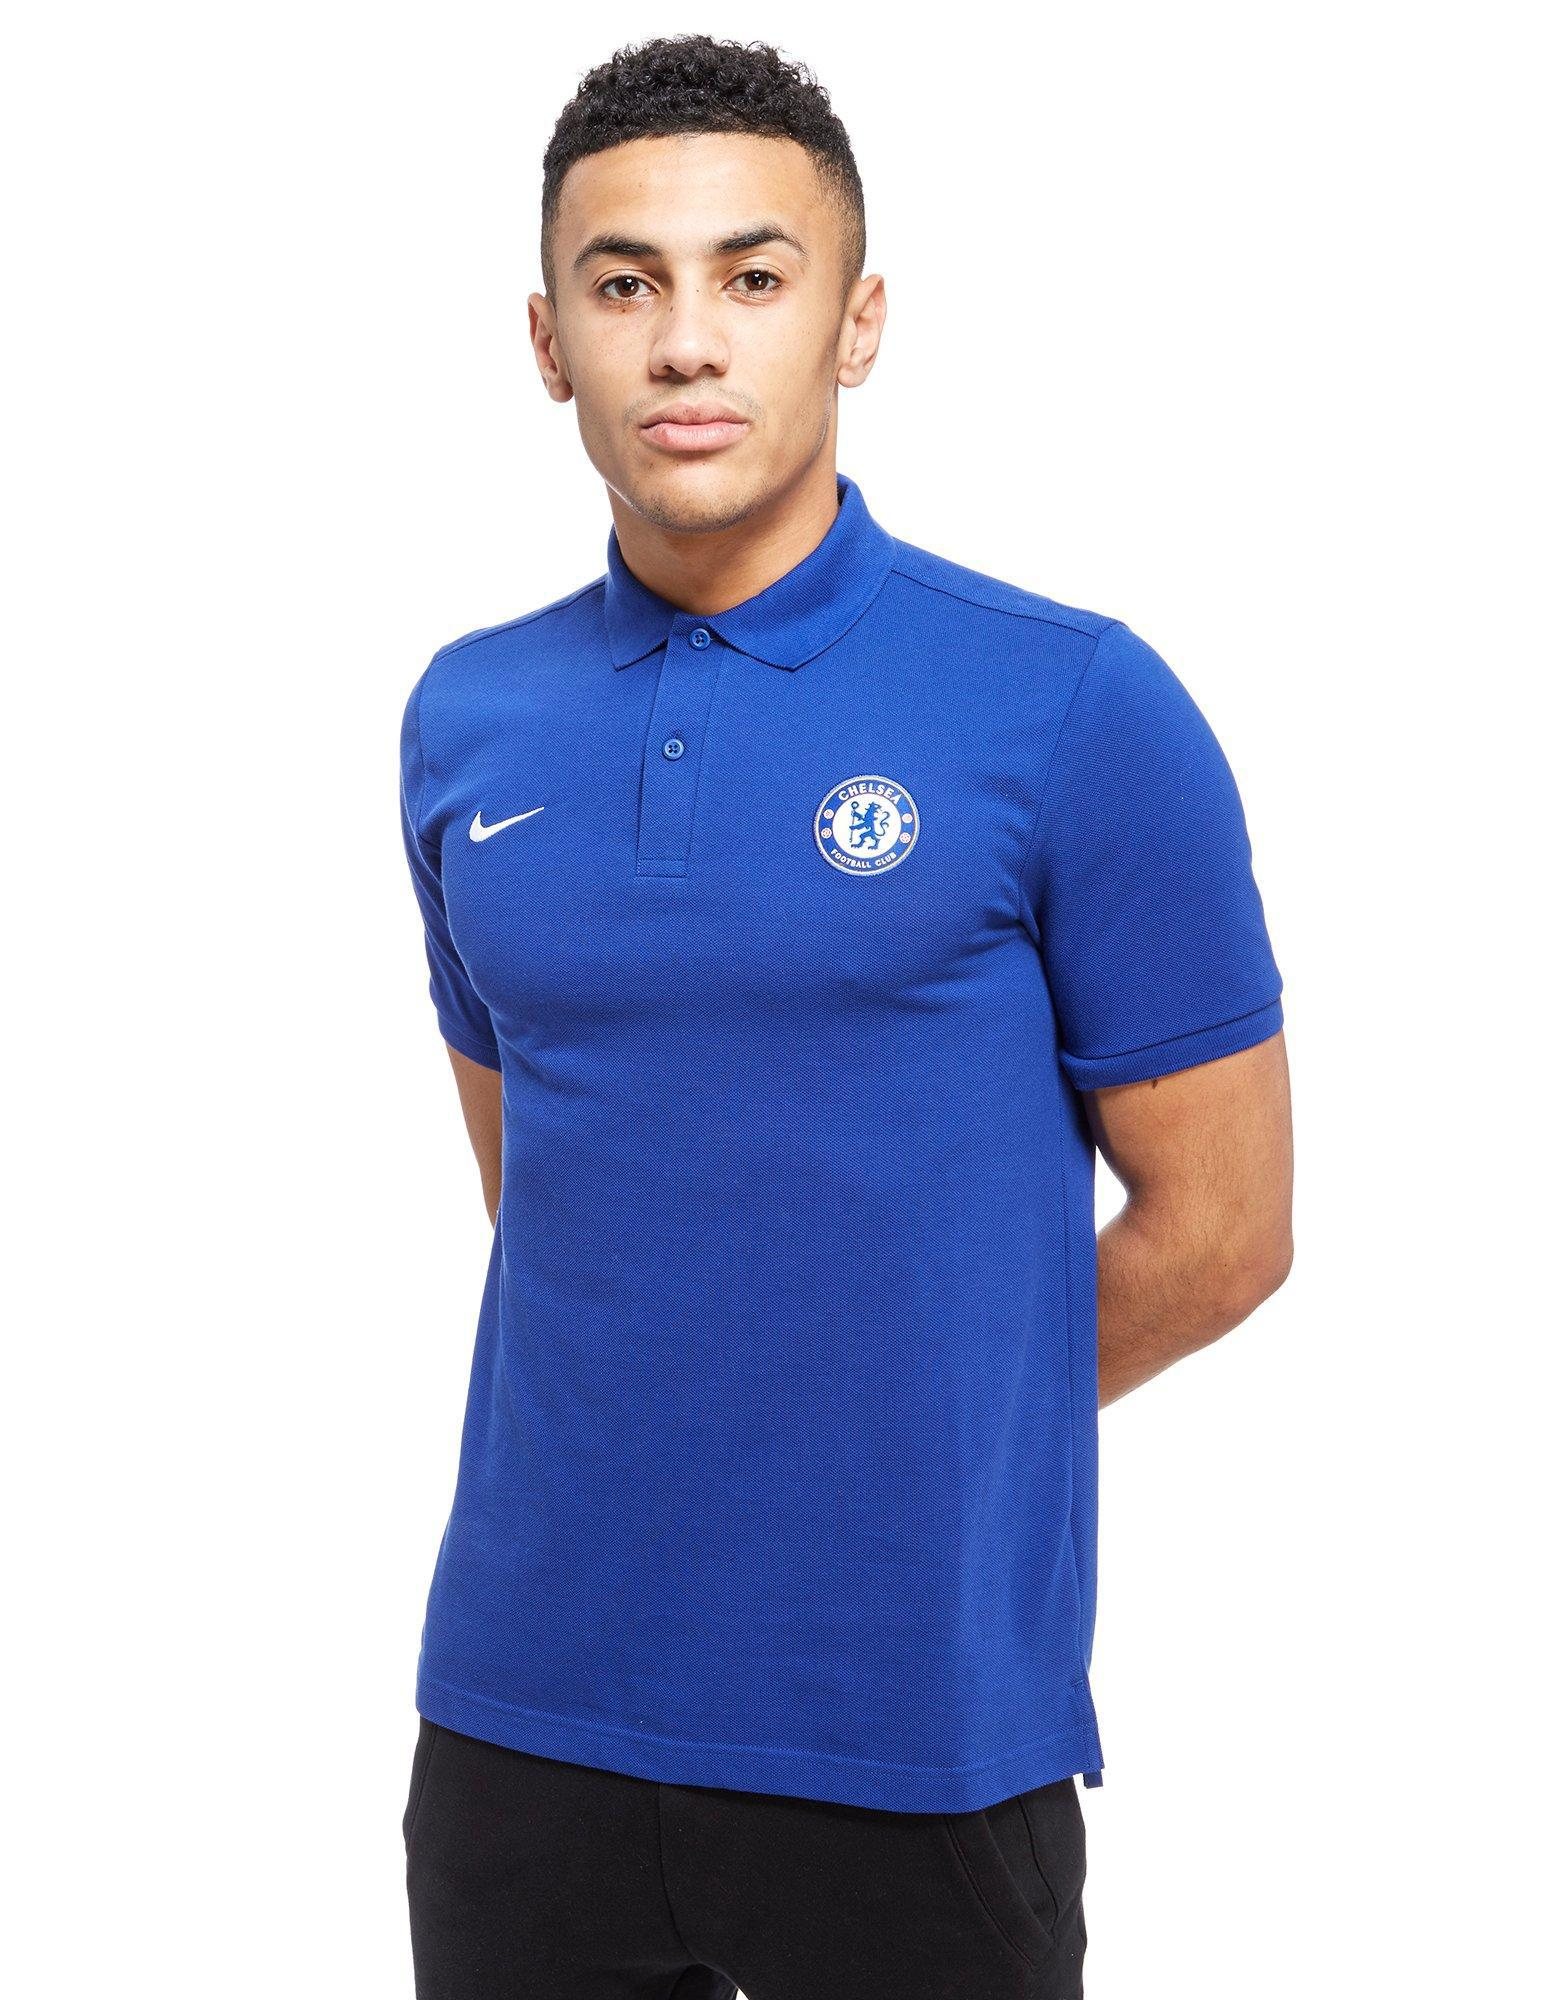 b85eda962 Nike Chelsea Fc 2017 Core Polo Shirt in Blue for Men - Lyst